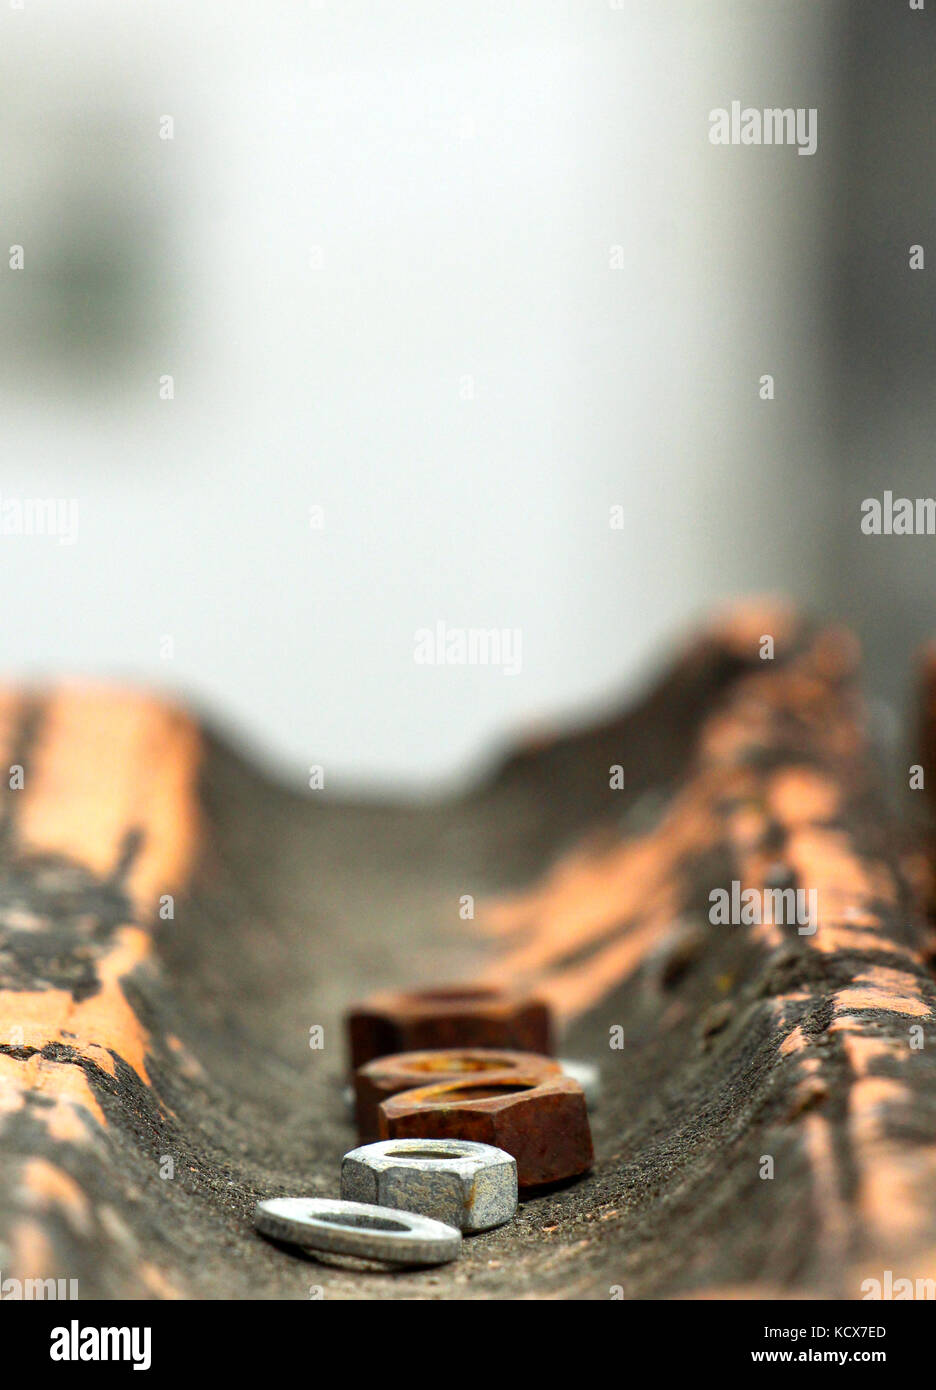 old rusty metal nuts on an old roof tile,shallow dof, Stock Photo